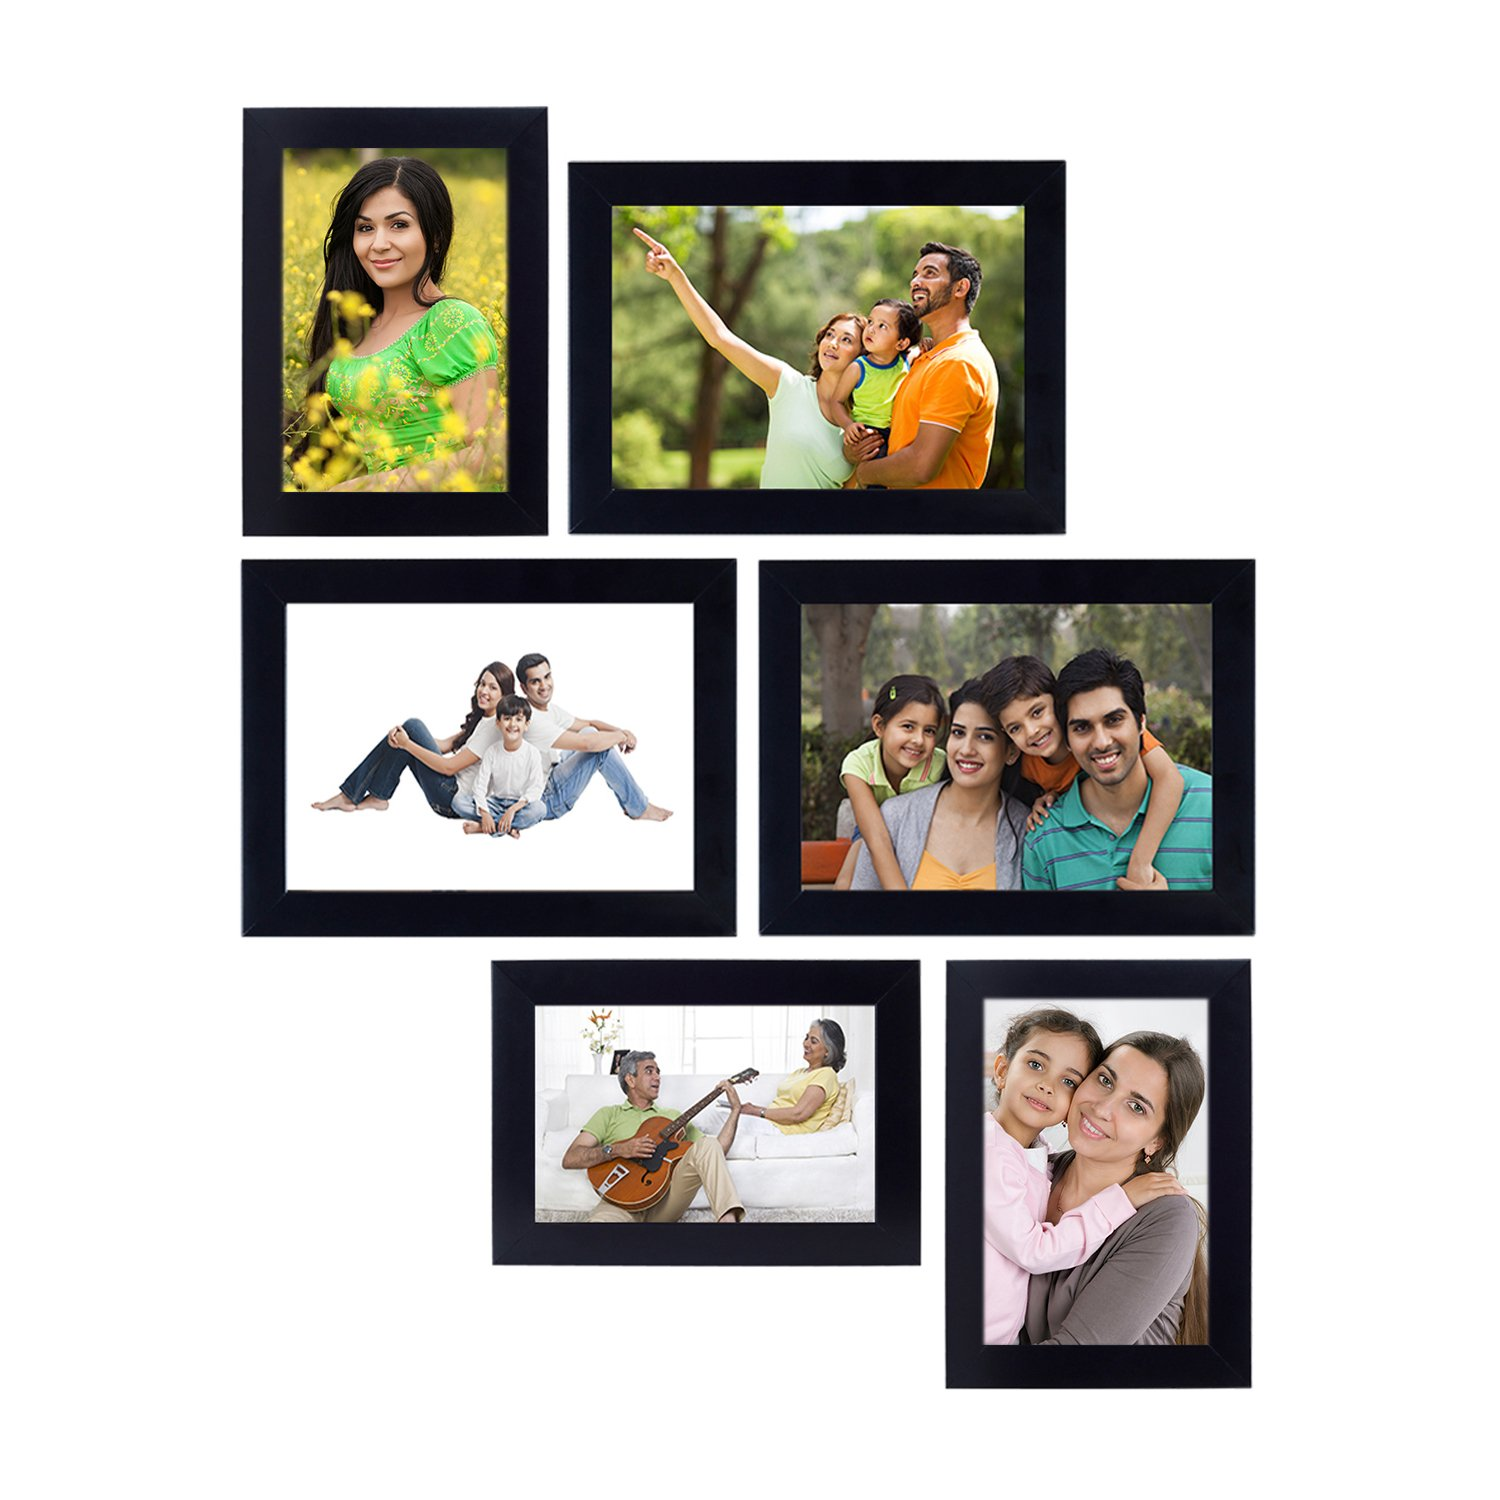 Photos In Frames : Blue border flowers, green photo frame flowers new.